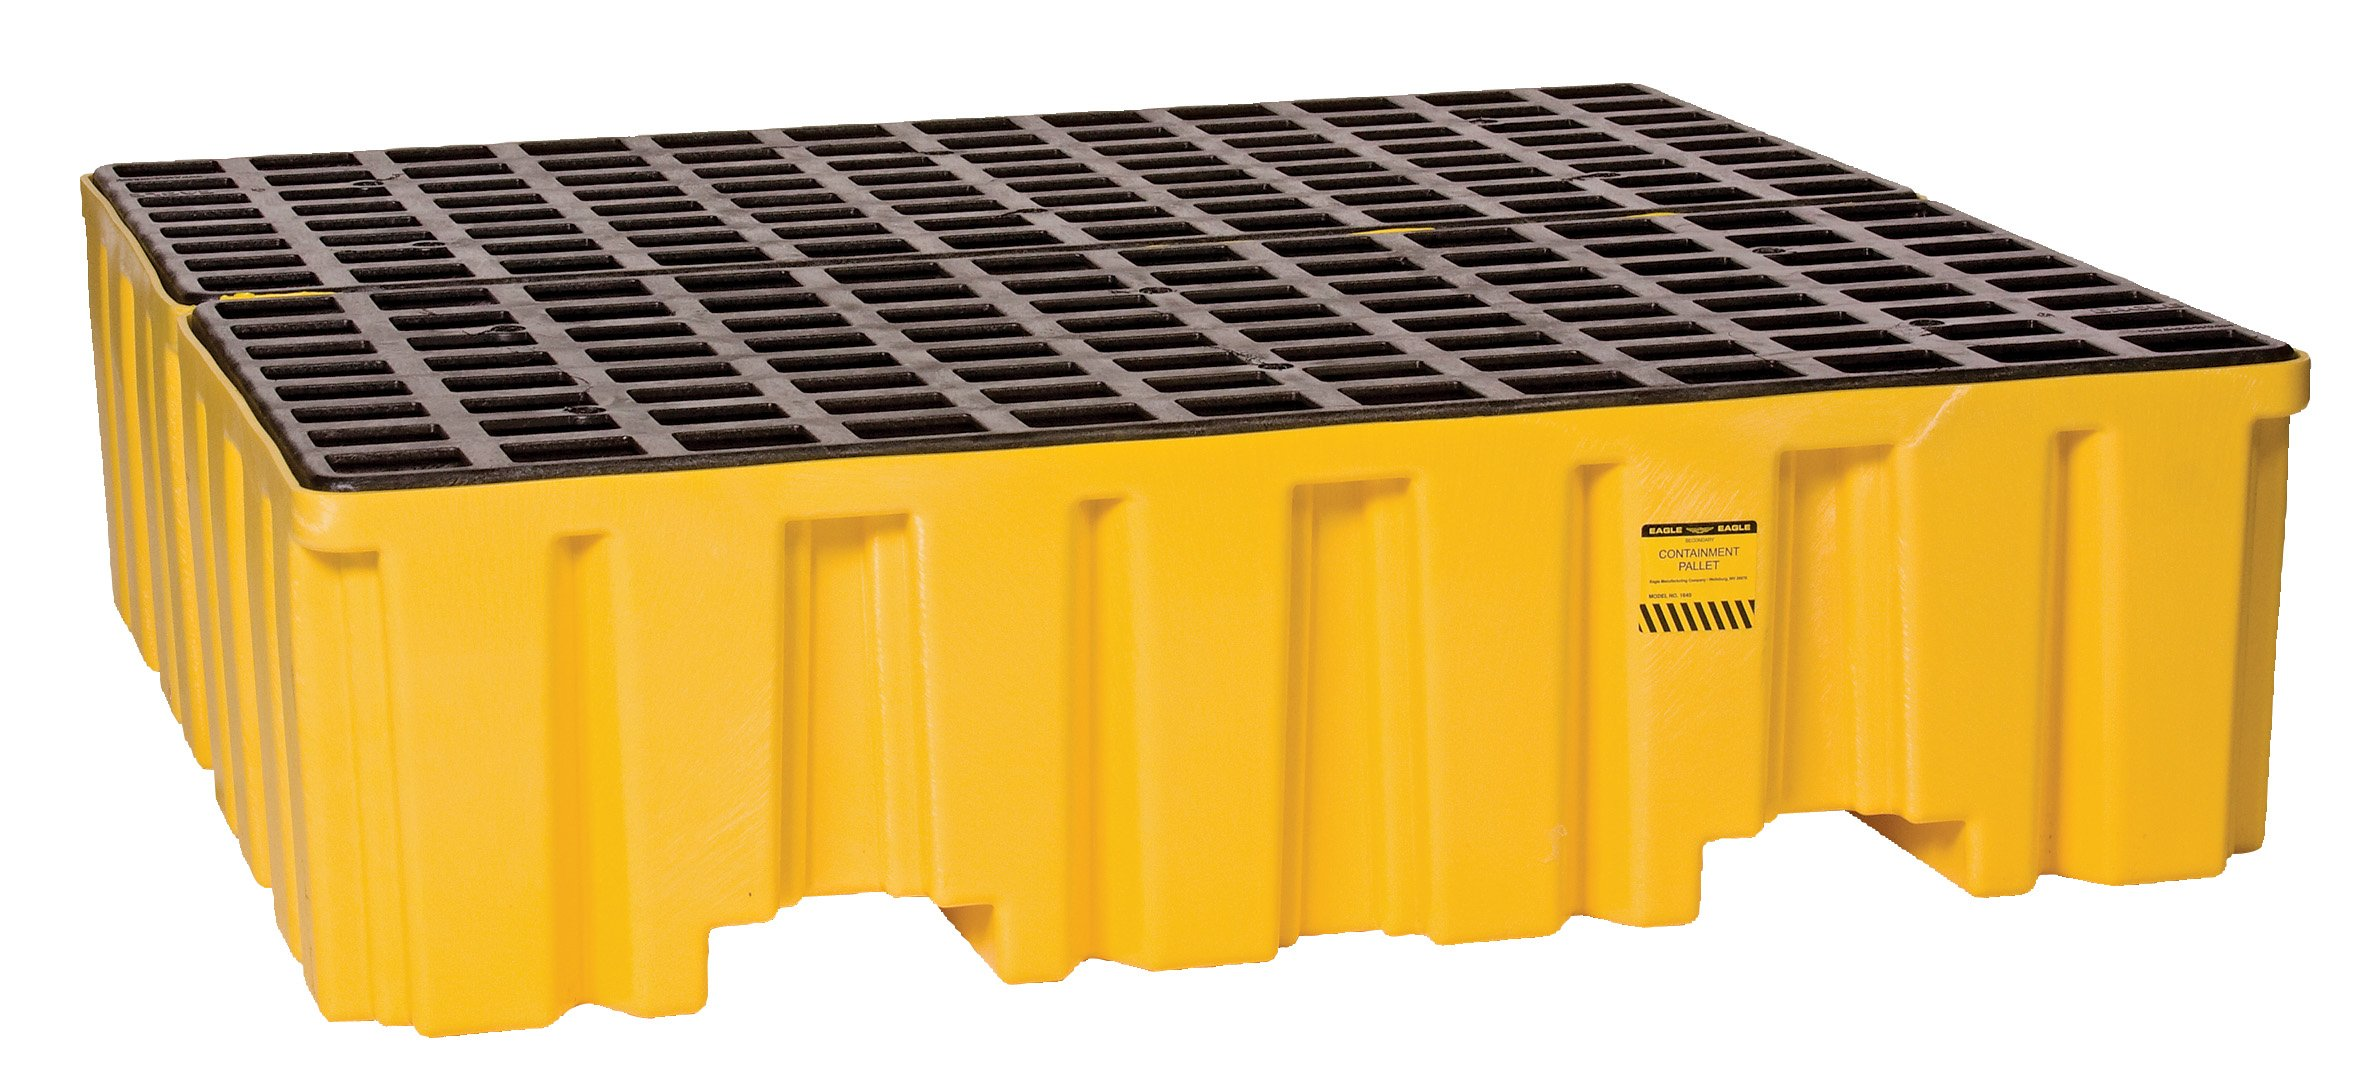 Eagle 1640ND Yellow 4 Drum Containment Pallet without Drain